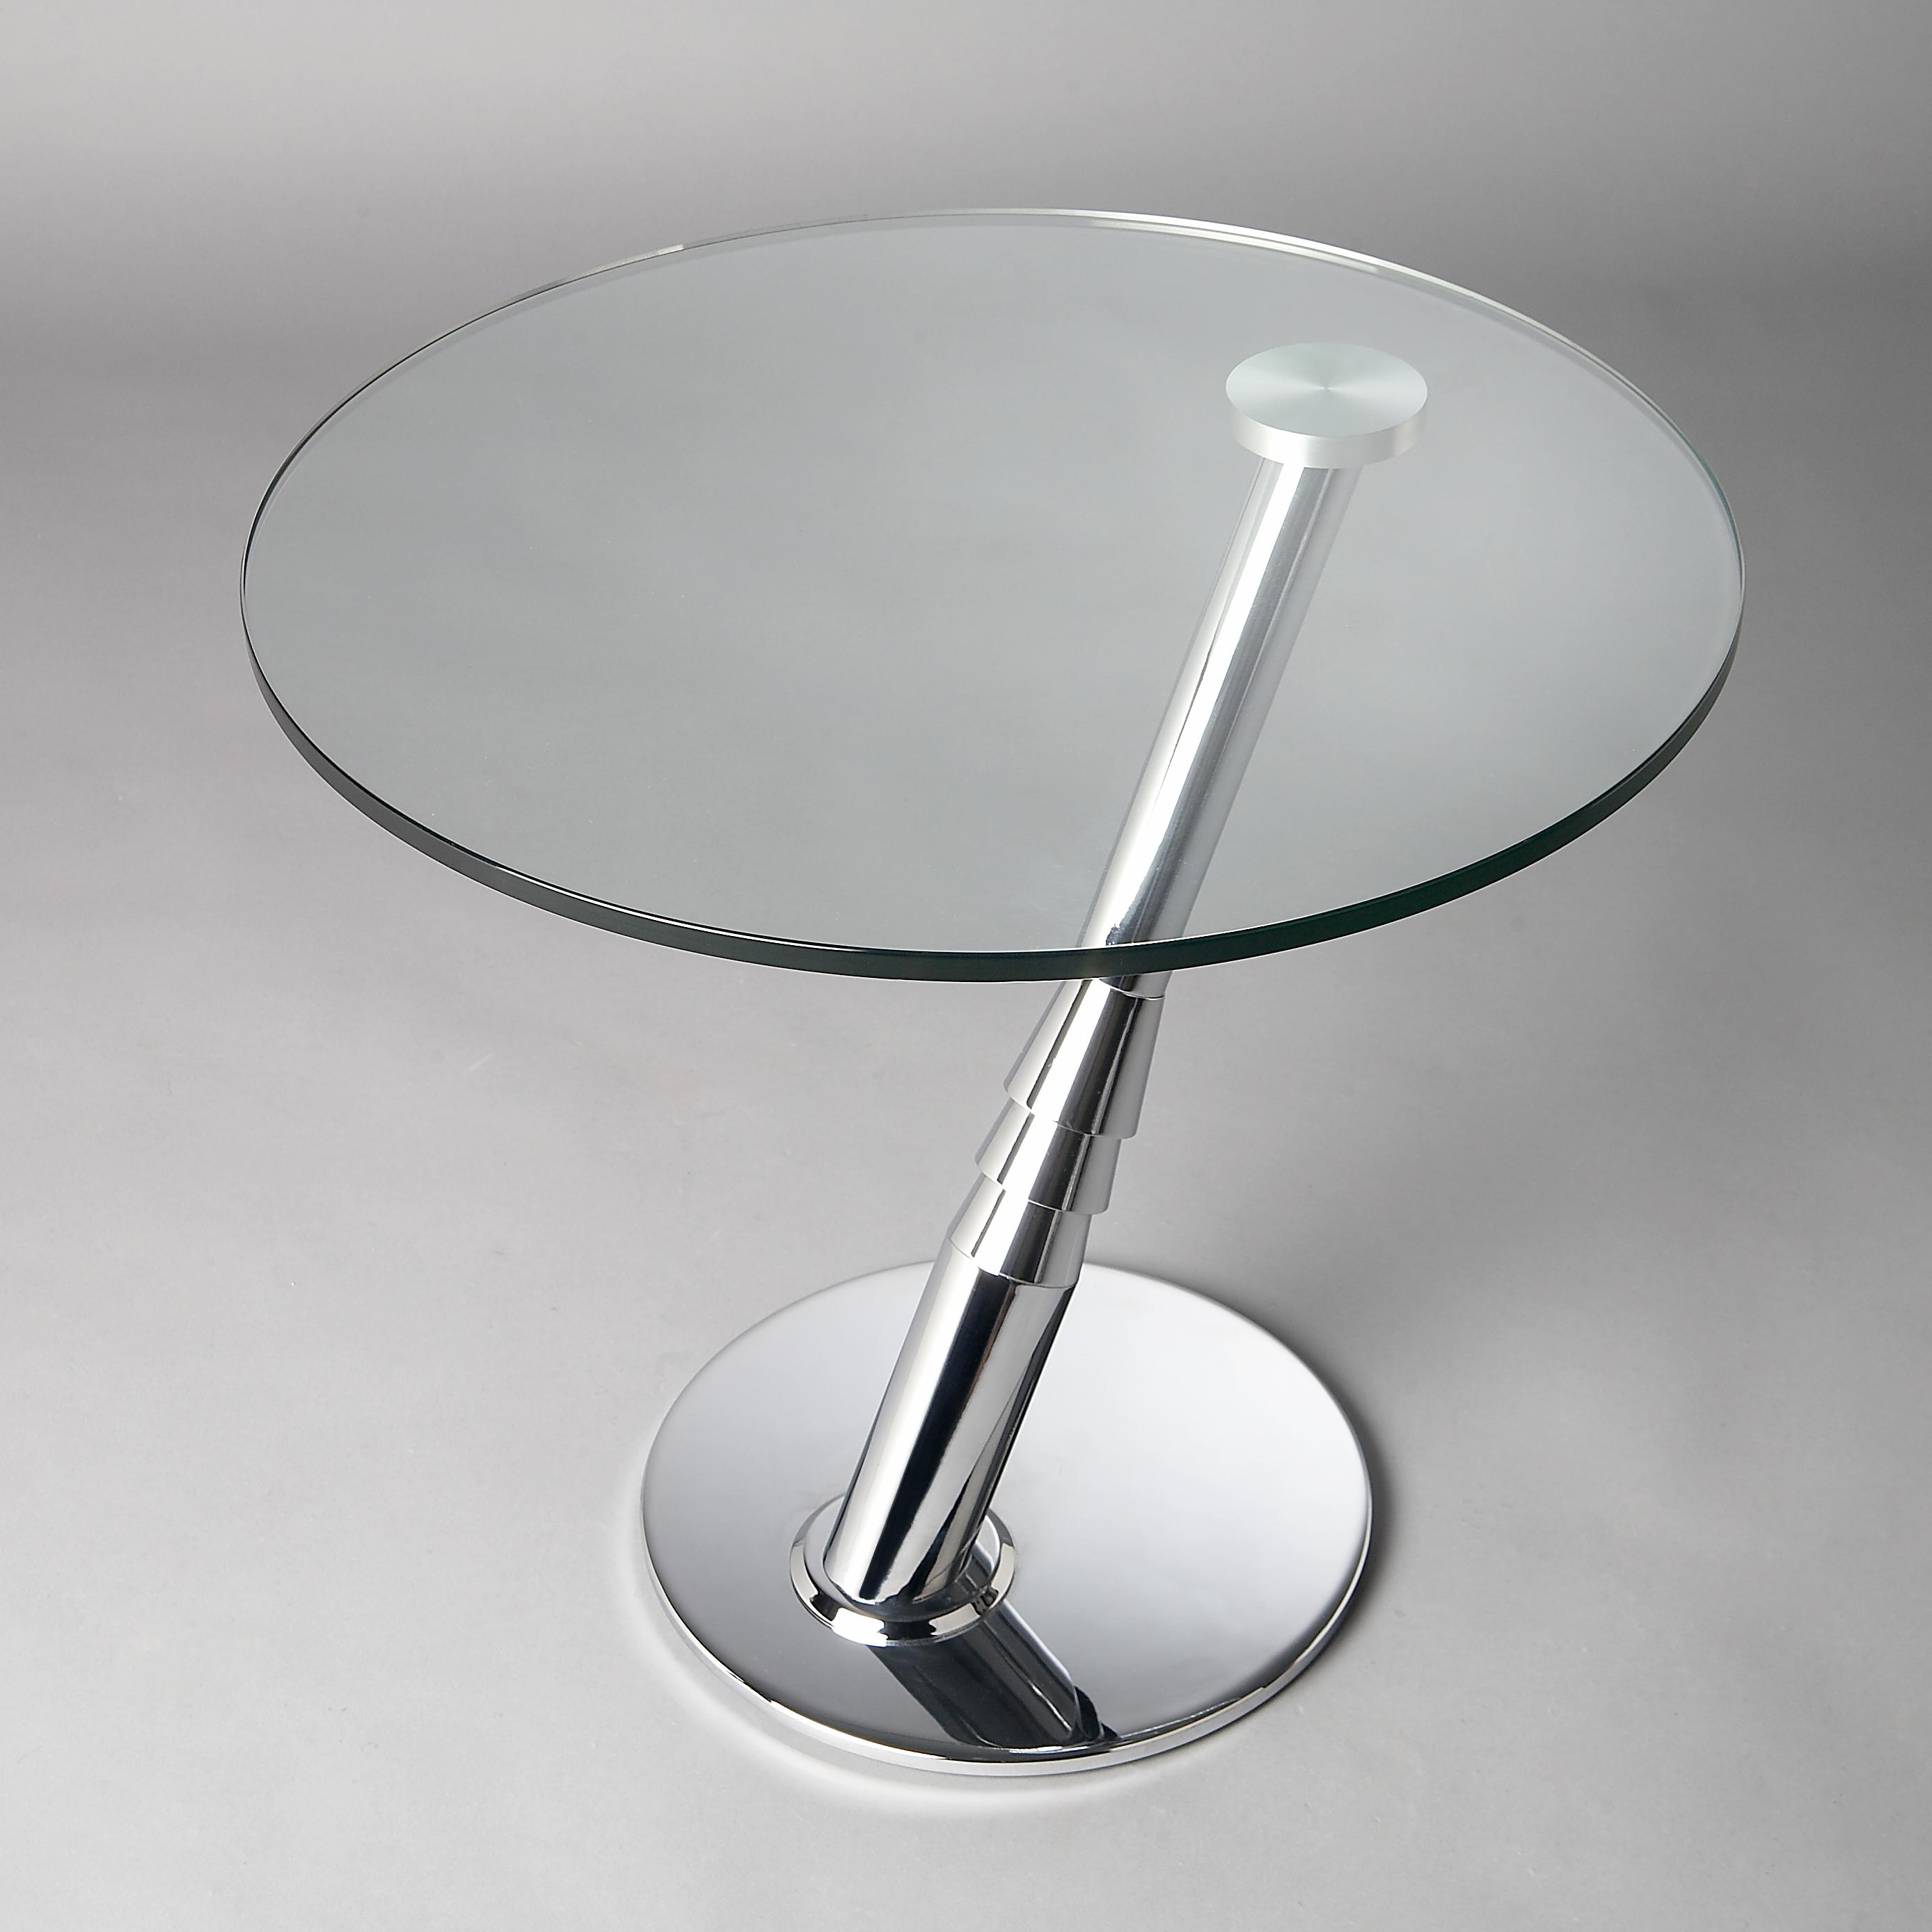 8160 Cocktail Glass Top Table by Chintaly Imports at Nassau Furniture and Mattress